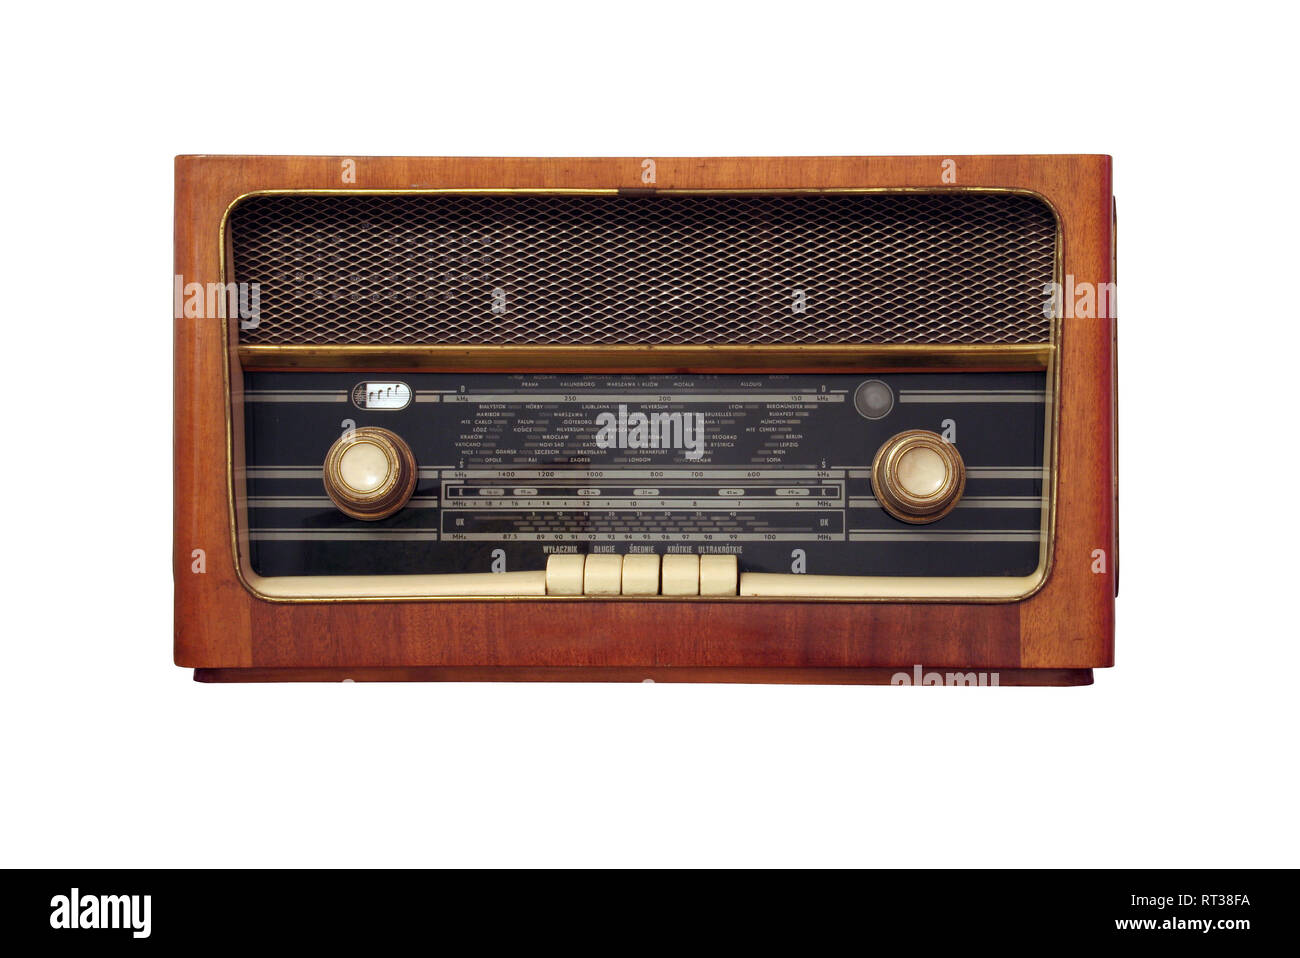 old antique wooden radio of my grandparents - isolated on white background - Stock Image